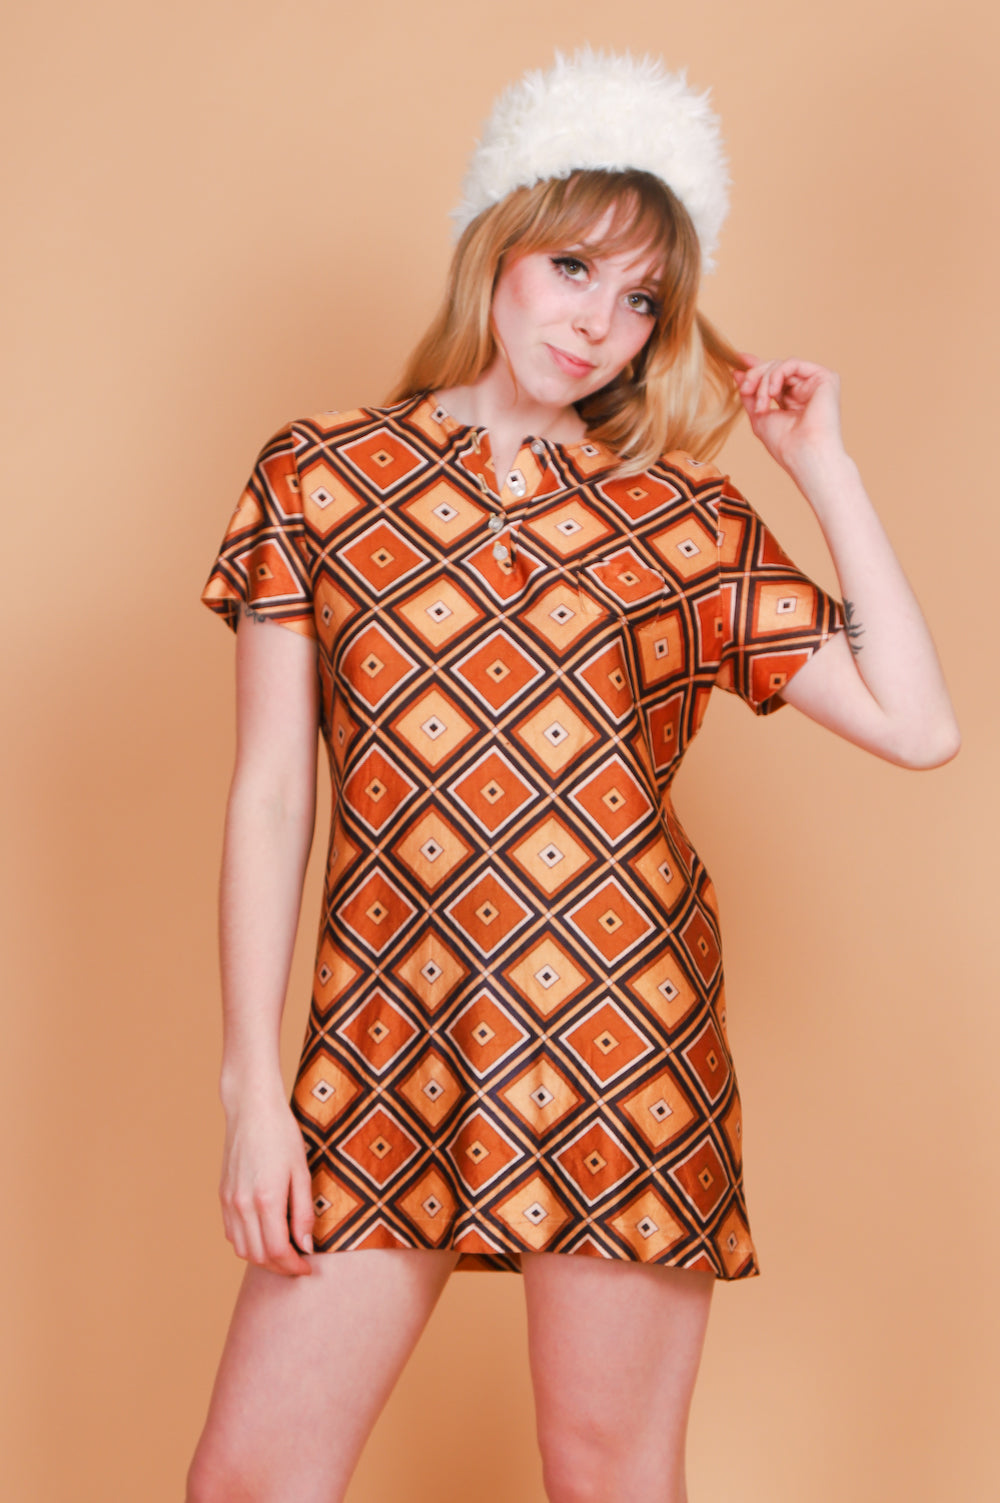 Vintage 1970's Boogie Nights Mini-Dress